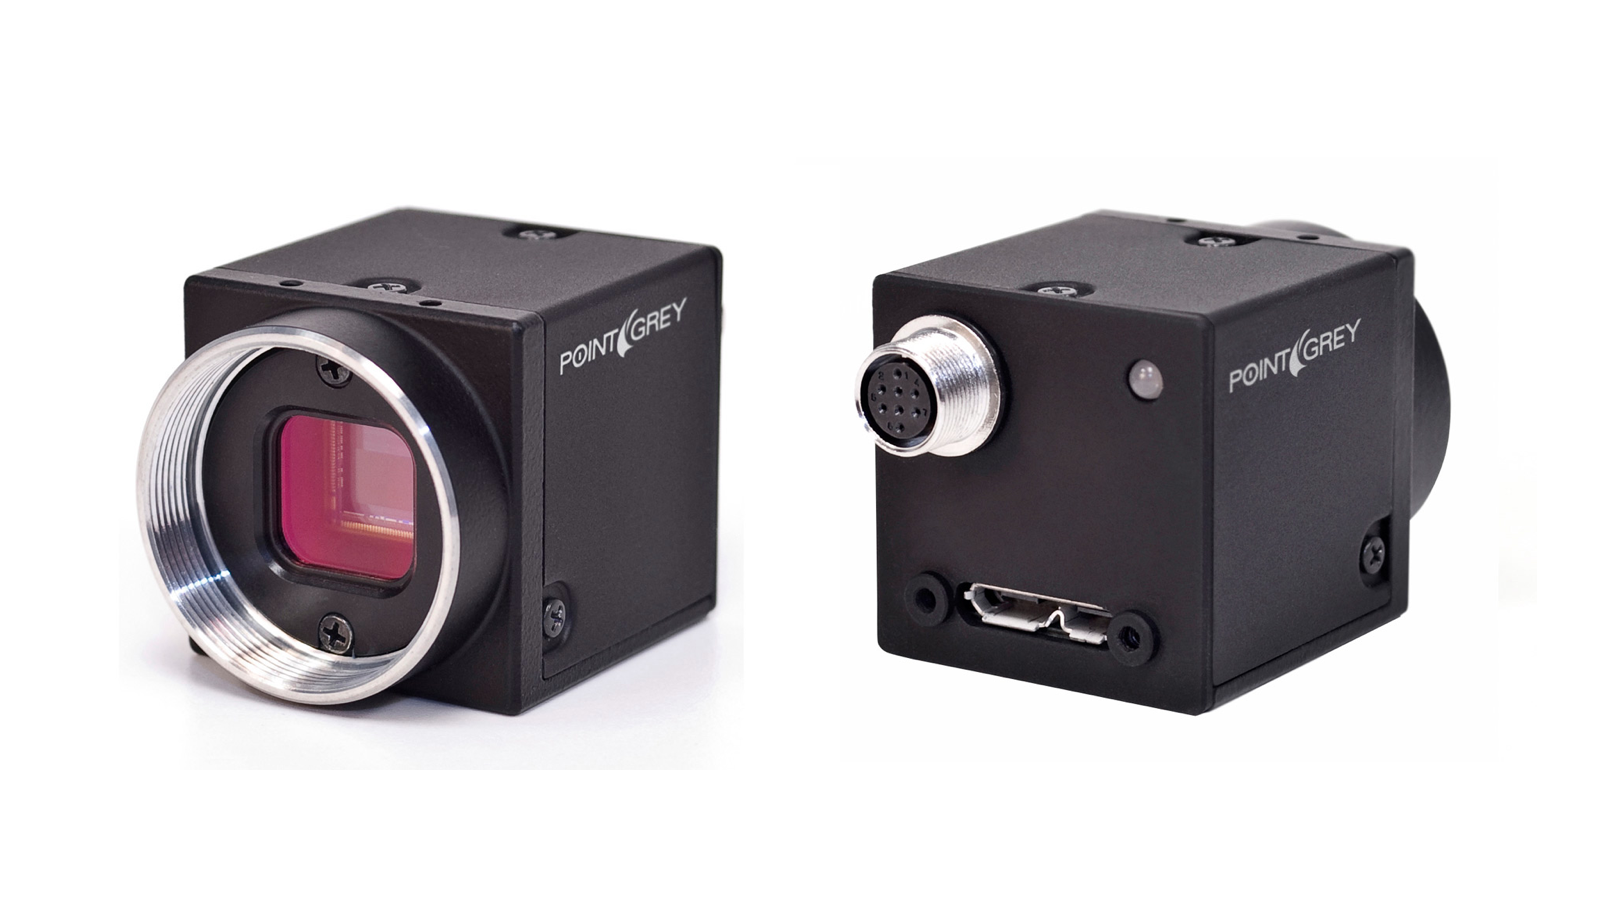 Click here to read The World's Smallest 4K Camera Fits in the Palm of Your Hand